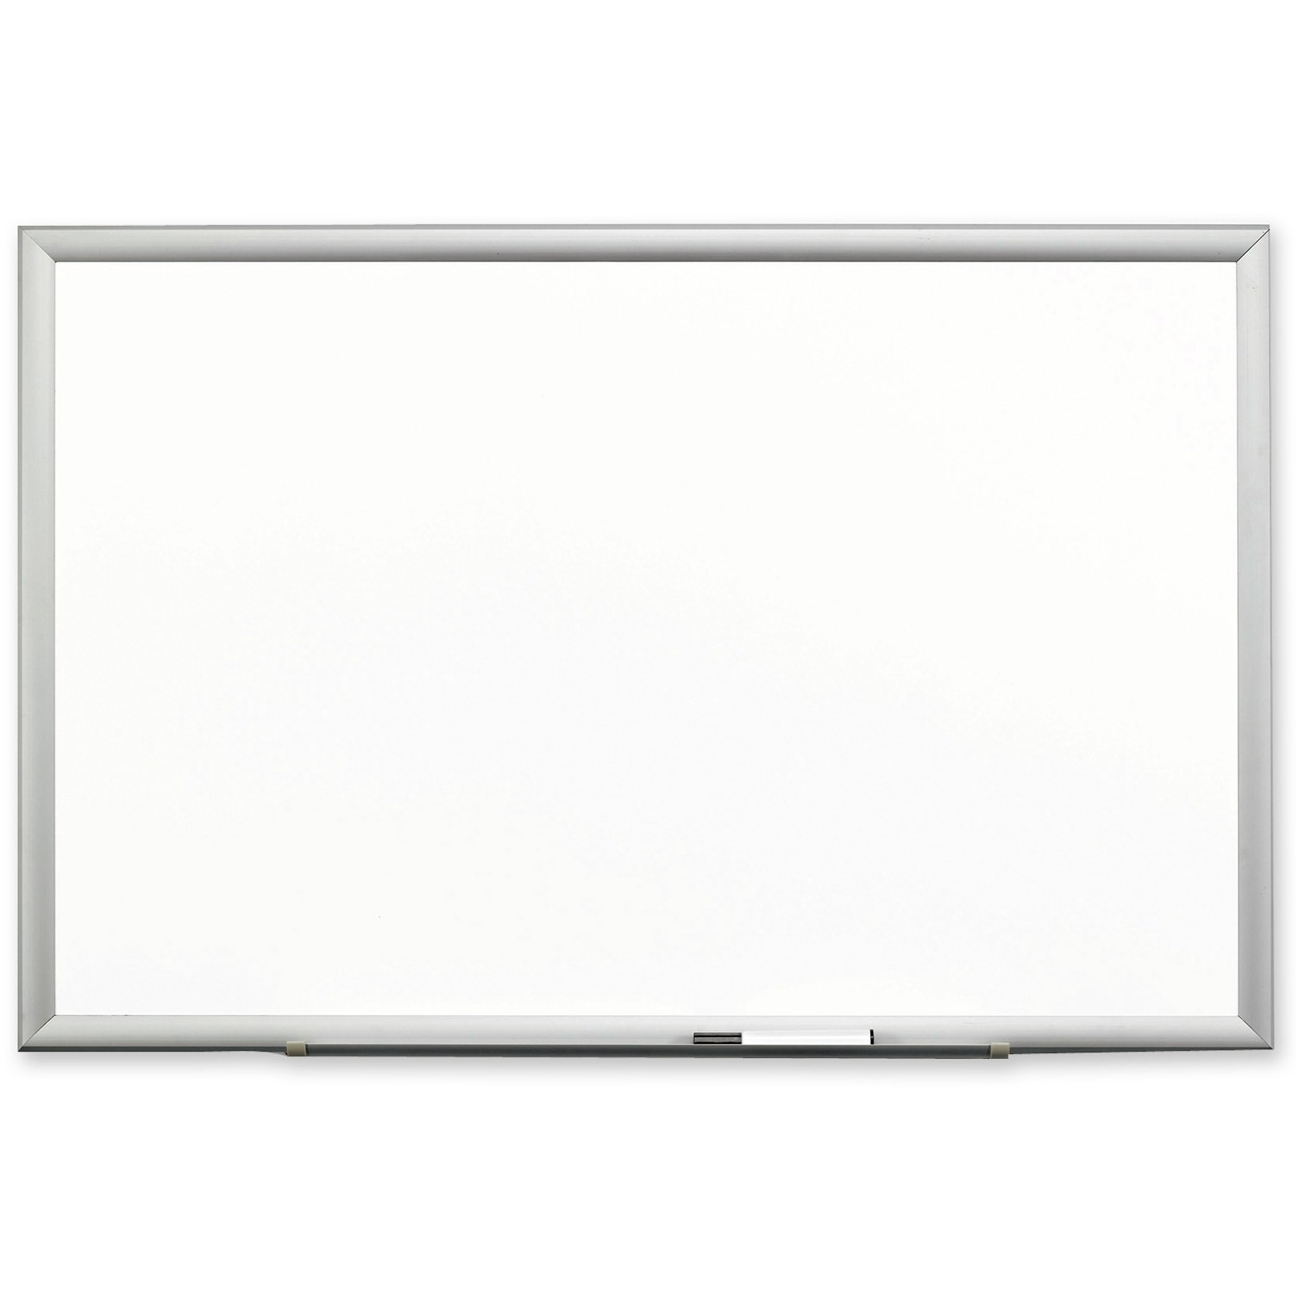 3M DEP9648A 96 x 48in Porcelain Dry Erase Board with 4 Dr...